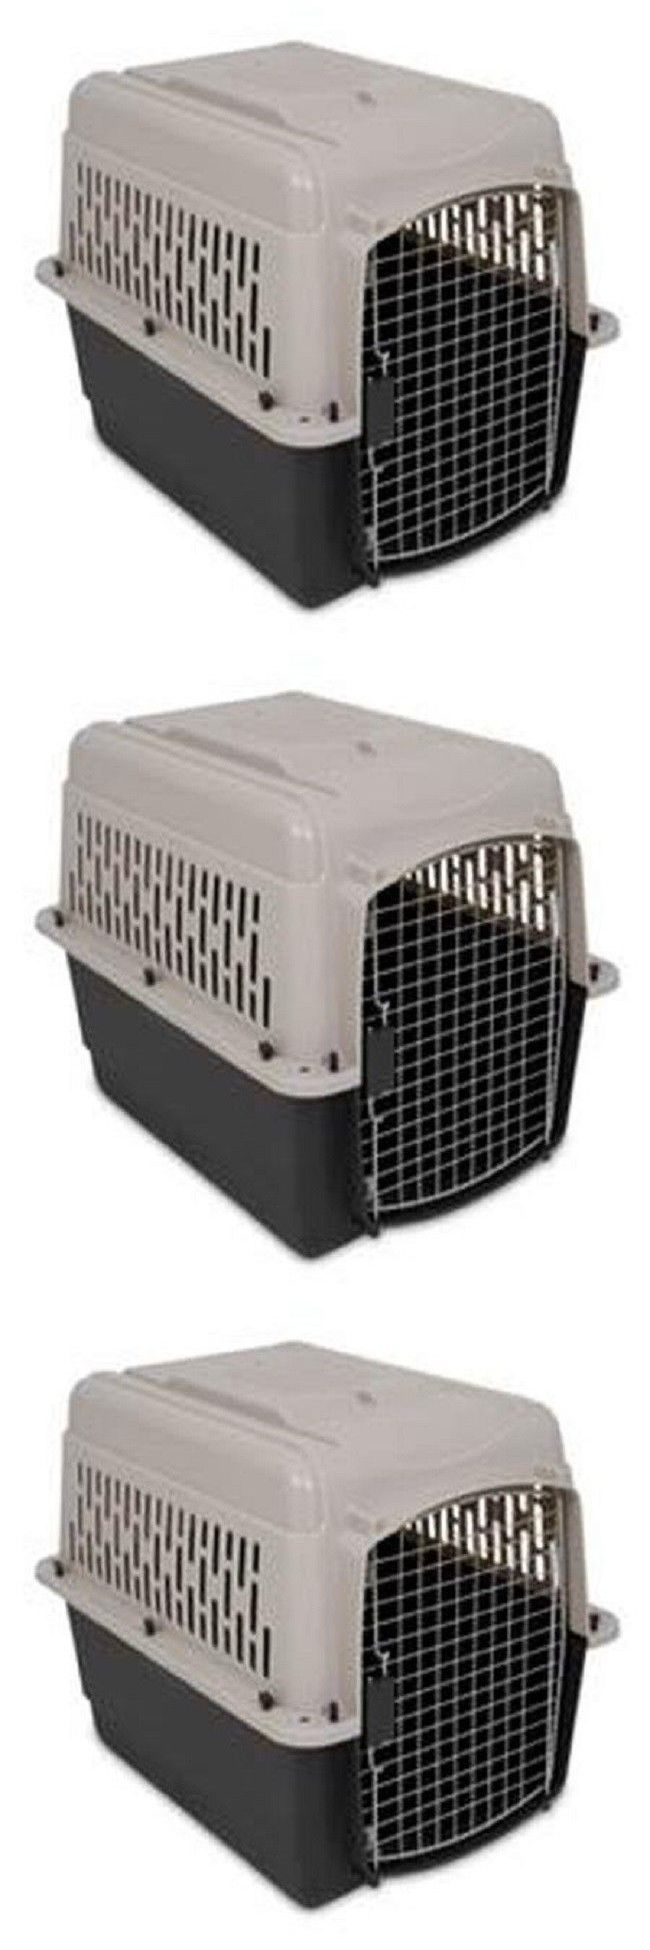 Carriers and Crates 26702: Dog Crate Puppy Cage Travel Cages Large Pet Carriers For Flying Cars Pets Taxi -> BUY IT NOW ONLY: $88.89 on eBay!